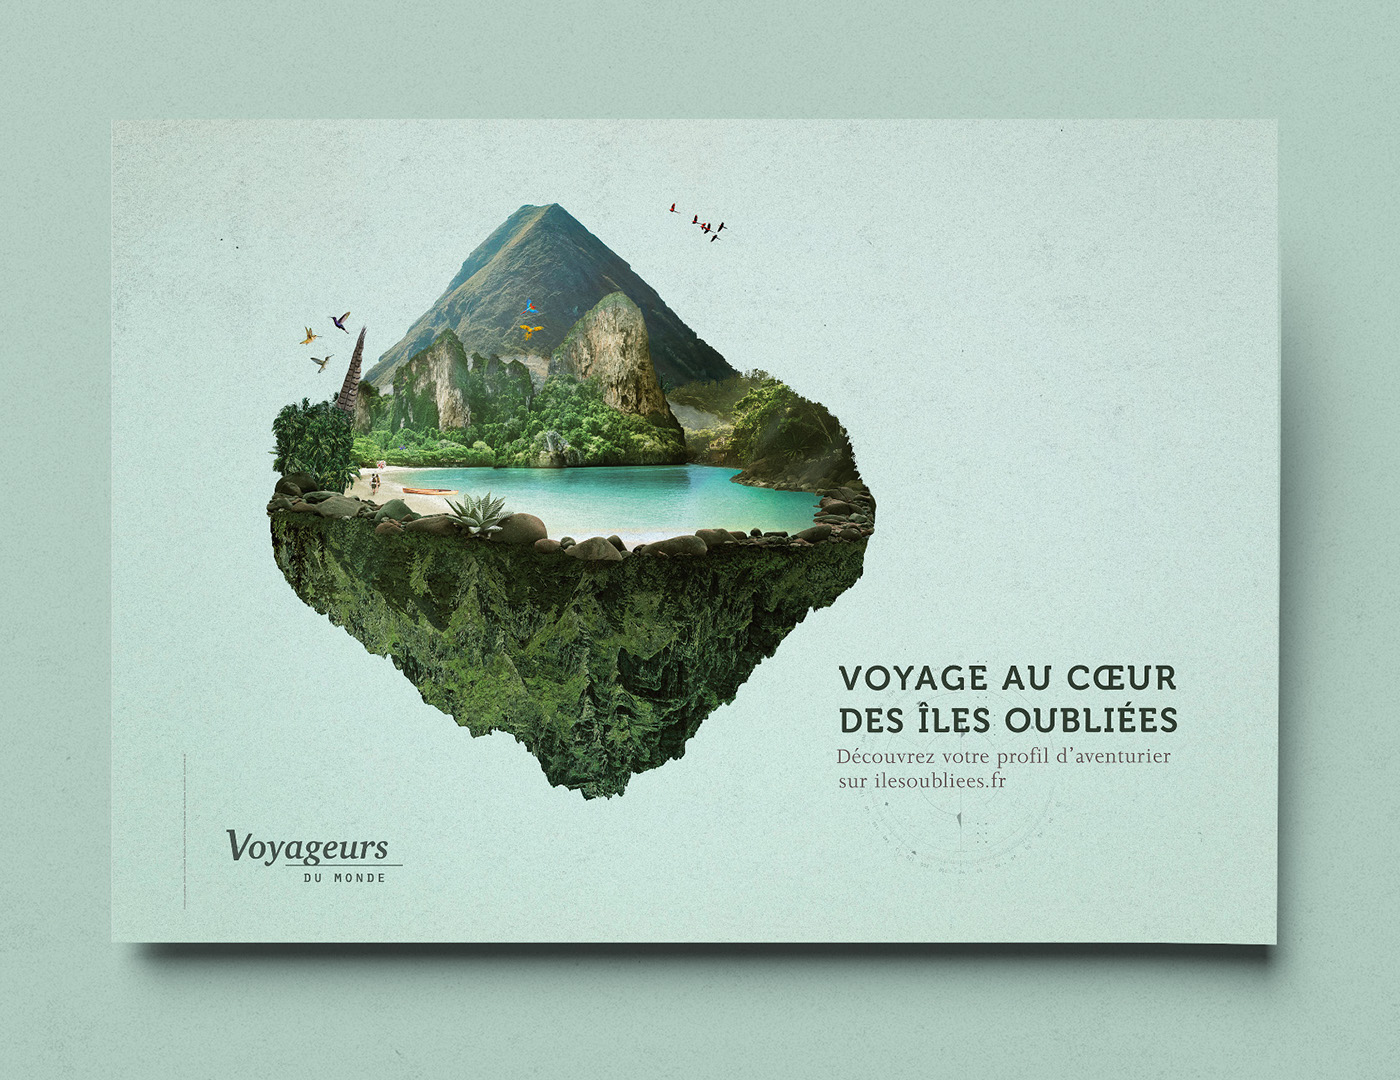 Travel Island travel guide exploration lost island mysterious island voyage map floating island discovery